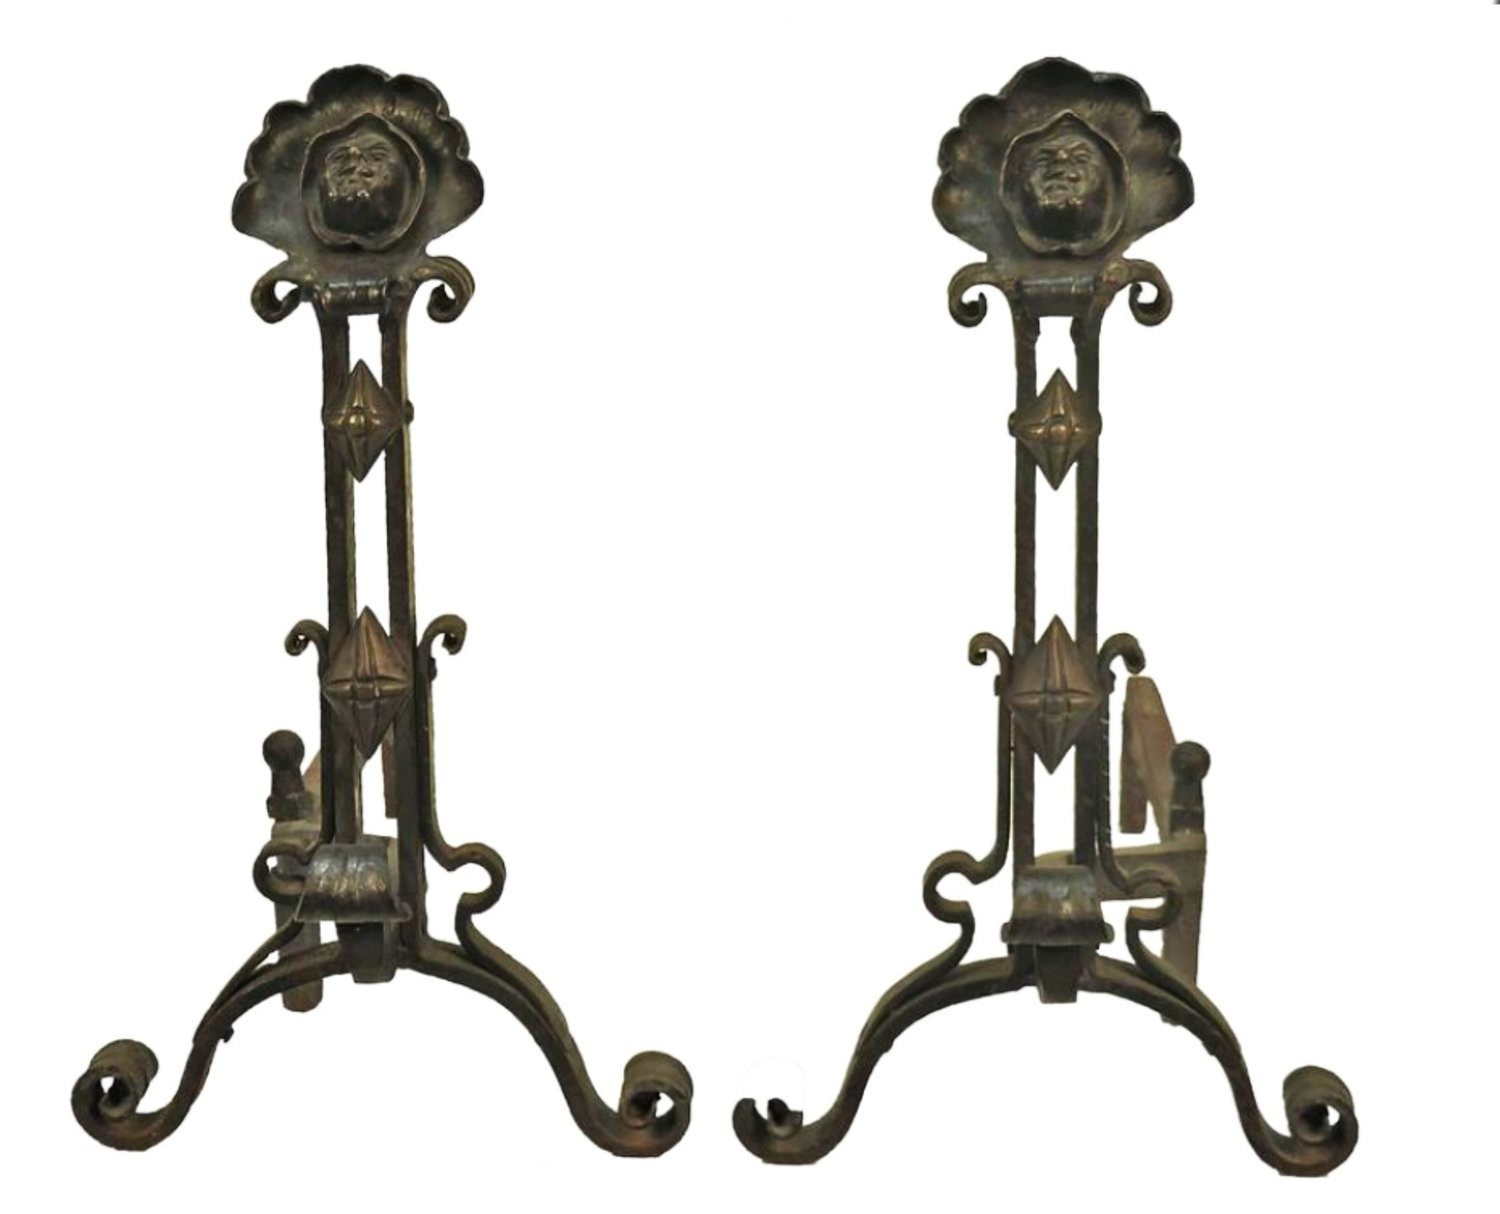 Antique Arts and Crafts Bronze Forged Iron Monk Face Andirons - American Gothic Fireplace Insert